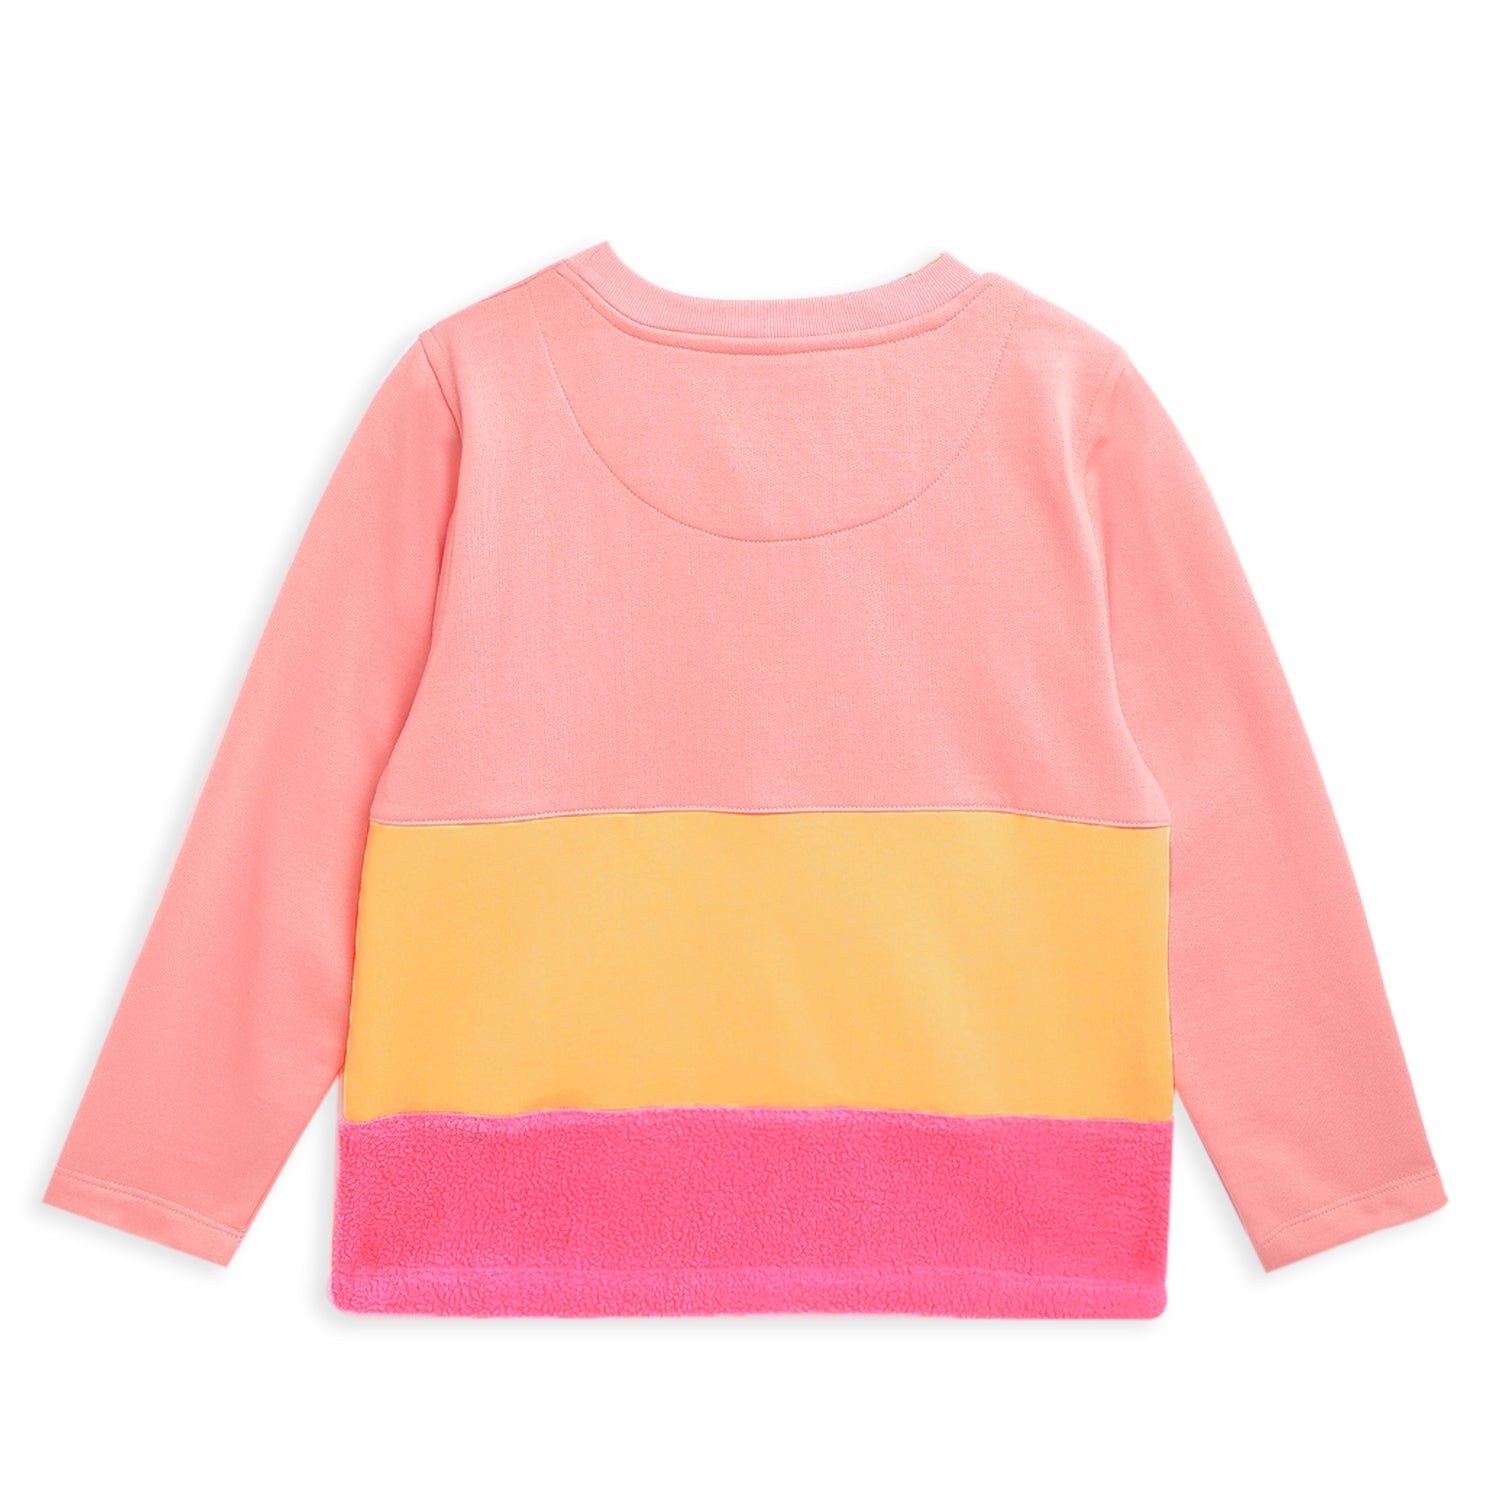 berry-colorblock-sweatshirt-ws-swshrt-6186ml